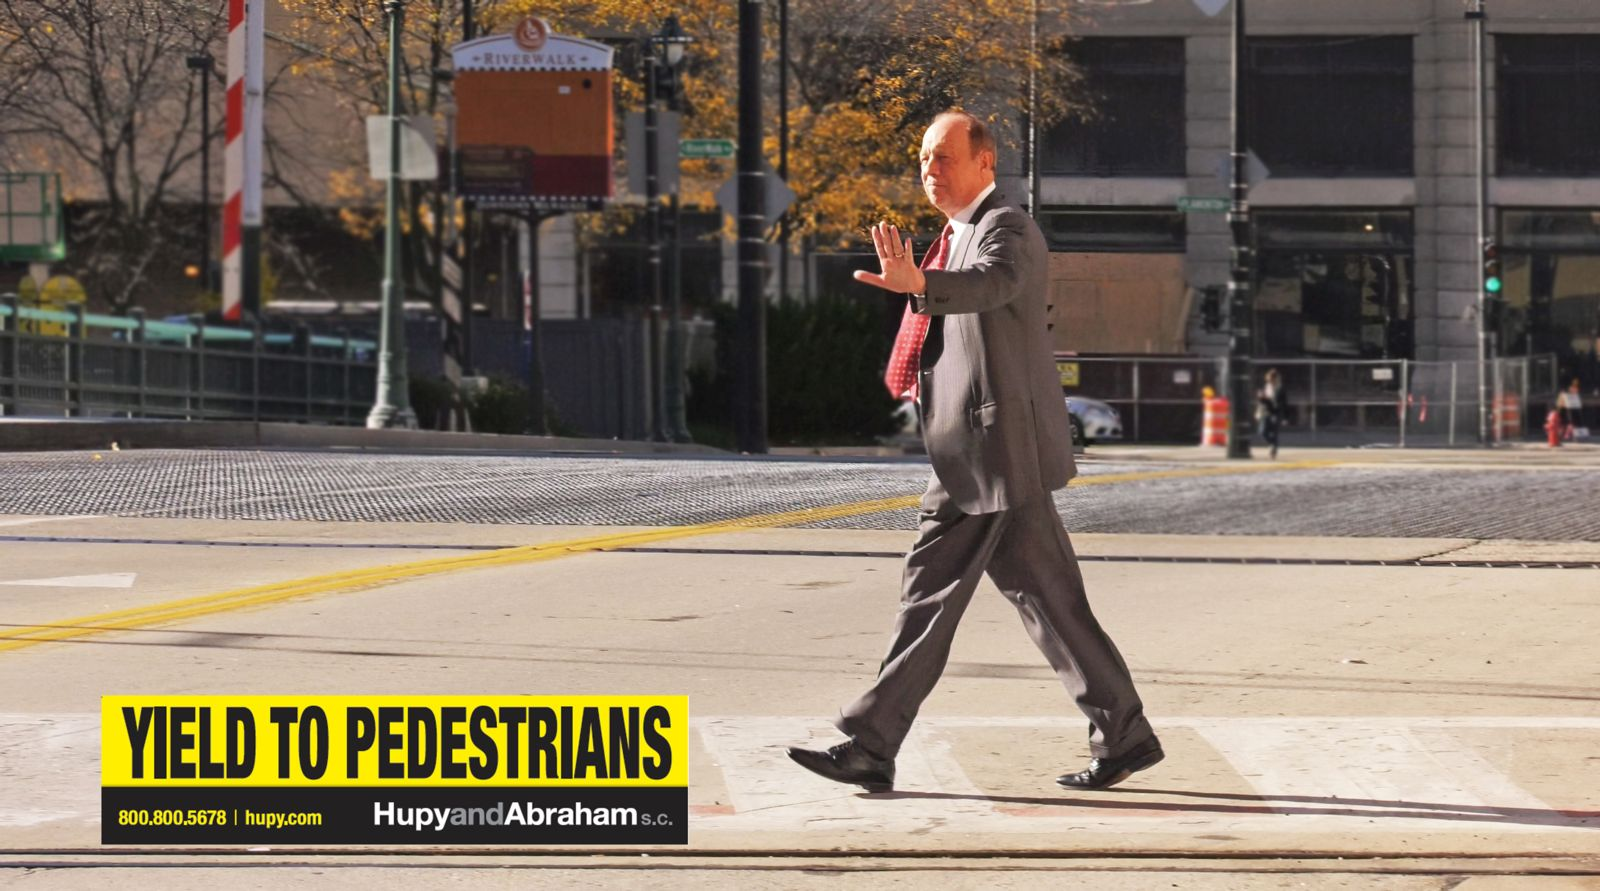 Attorney Michael Hupy crossing the street for Yeild for Pedestrians